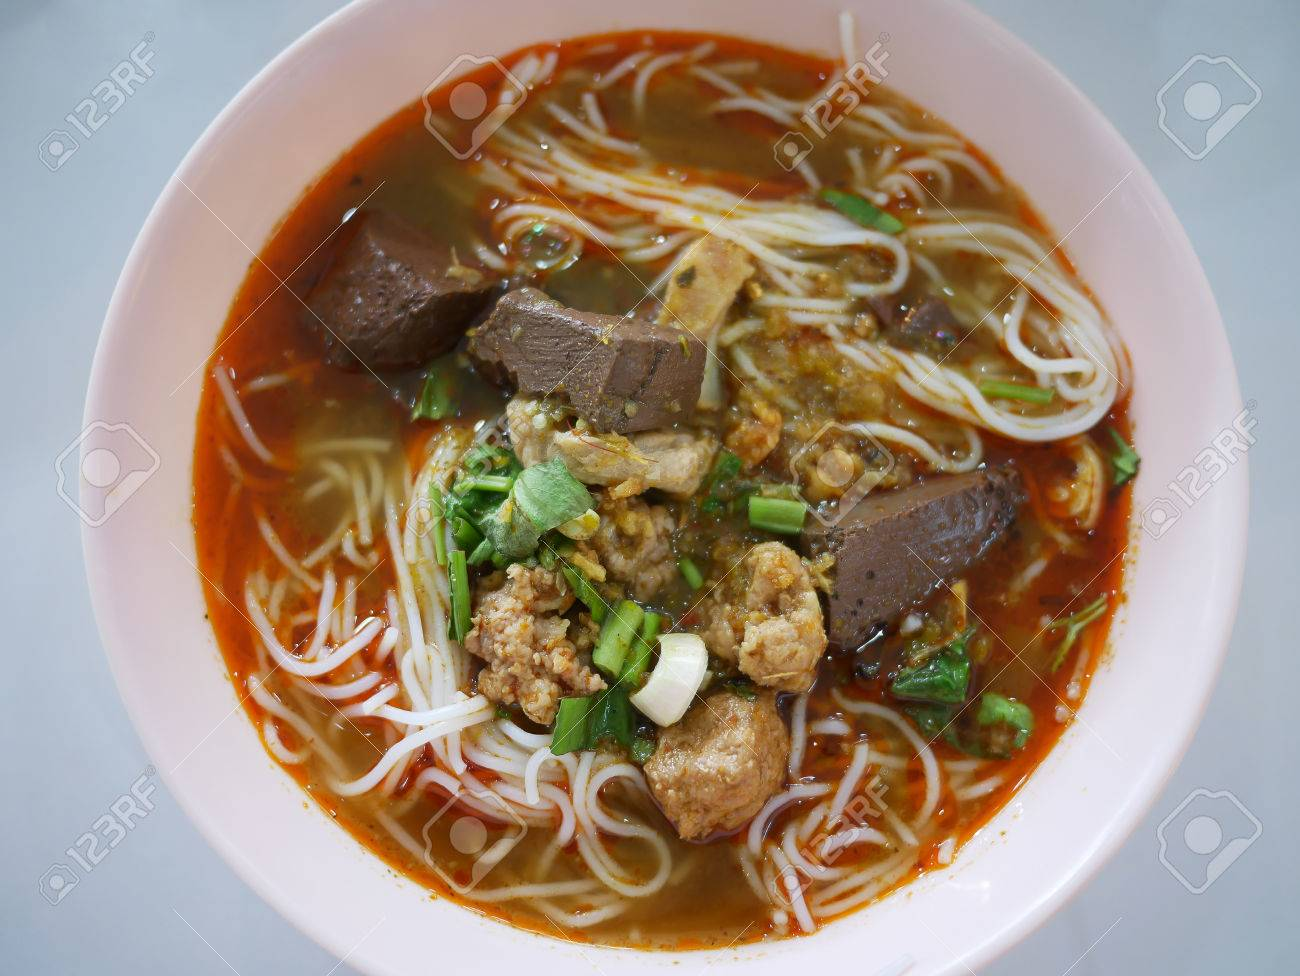 Rice noodles with spicy pork sauce, include Pork Chops, pork